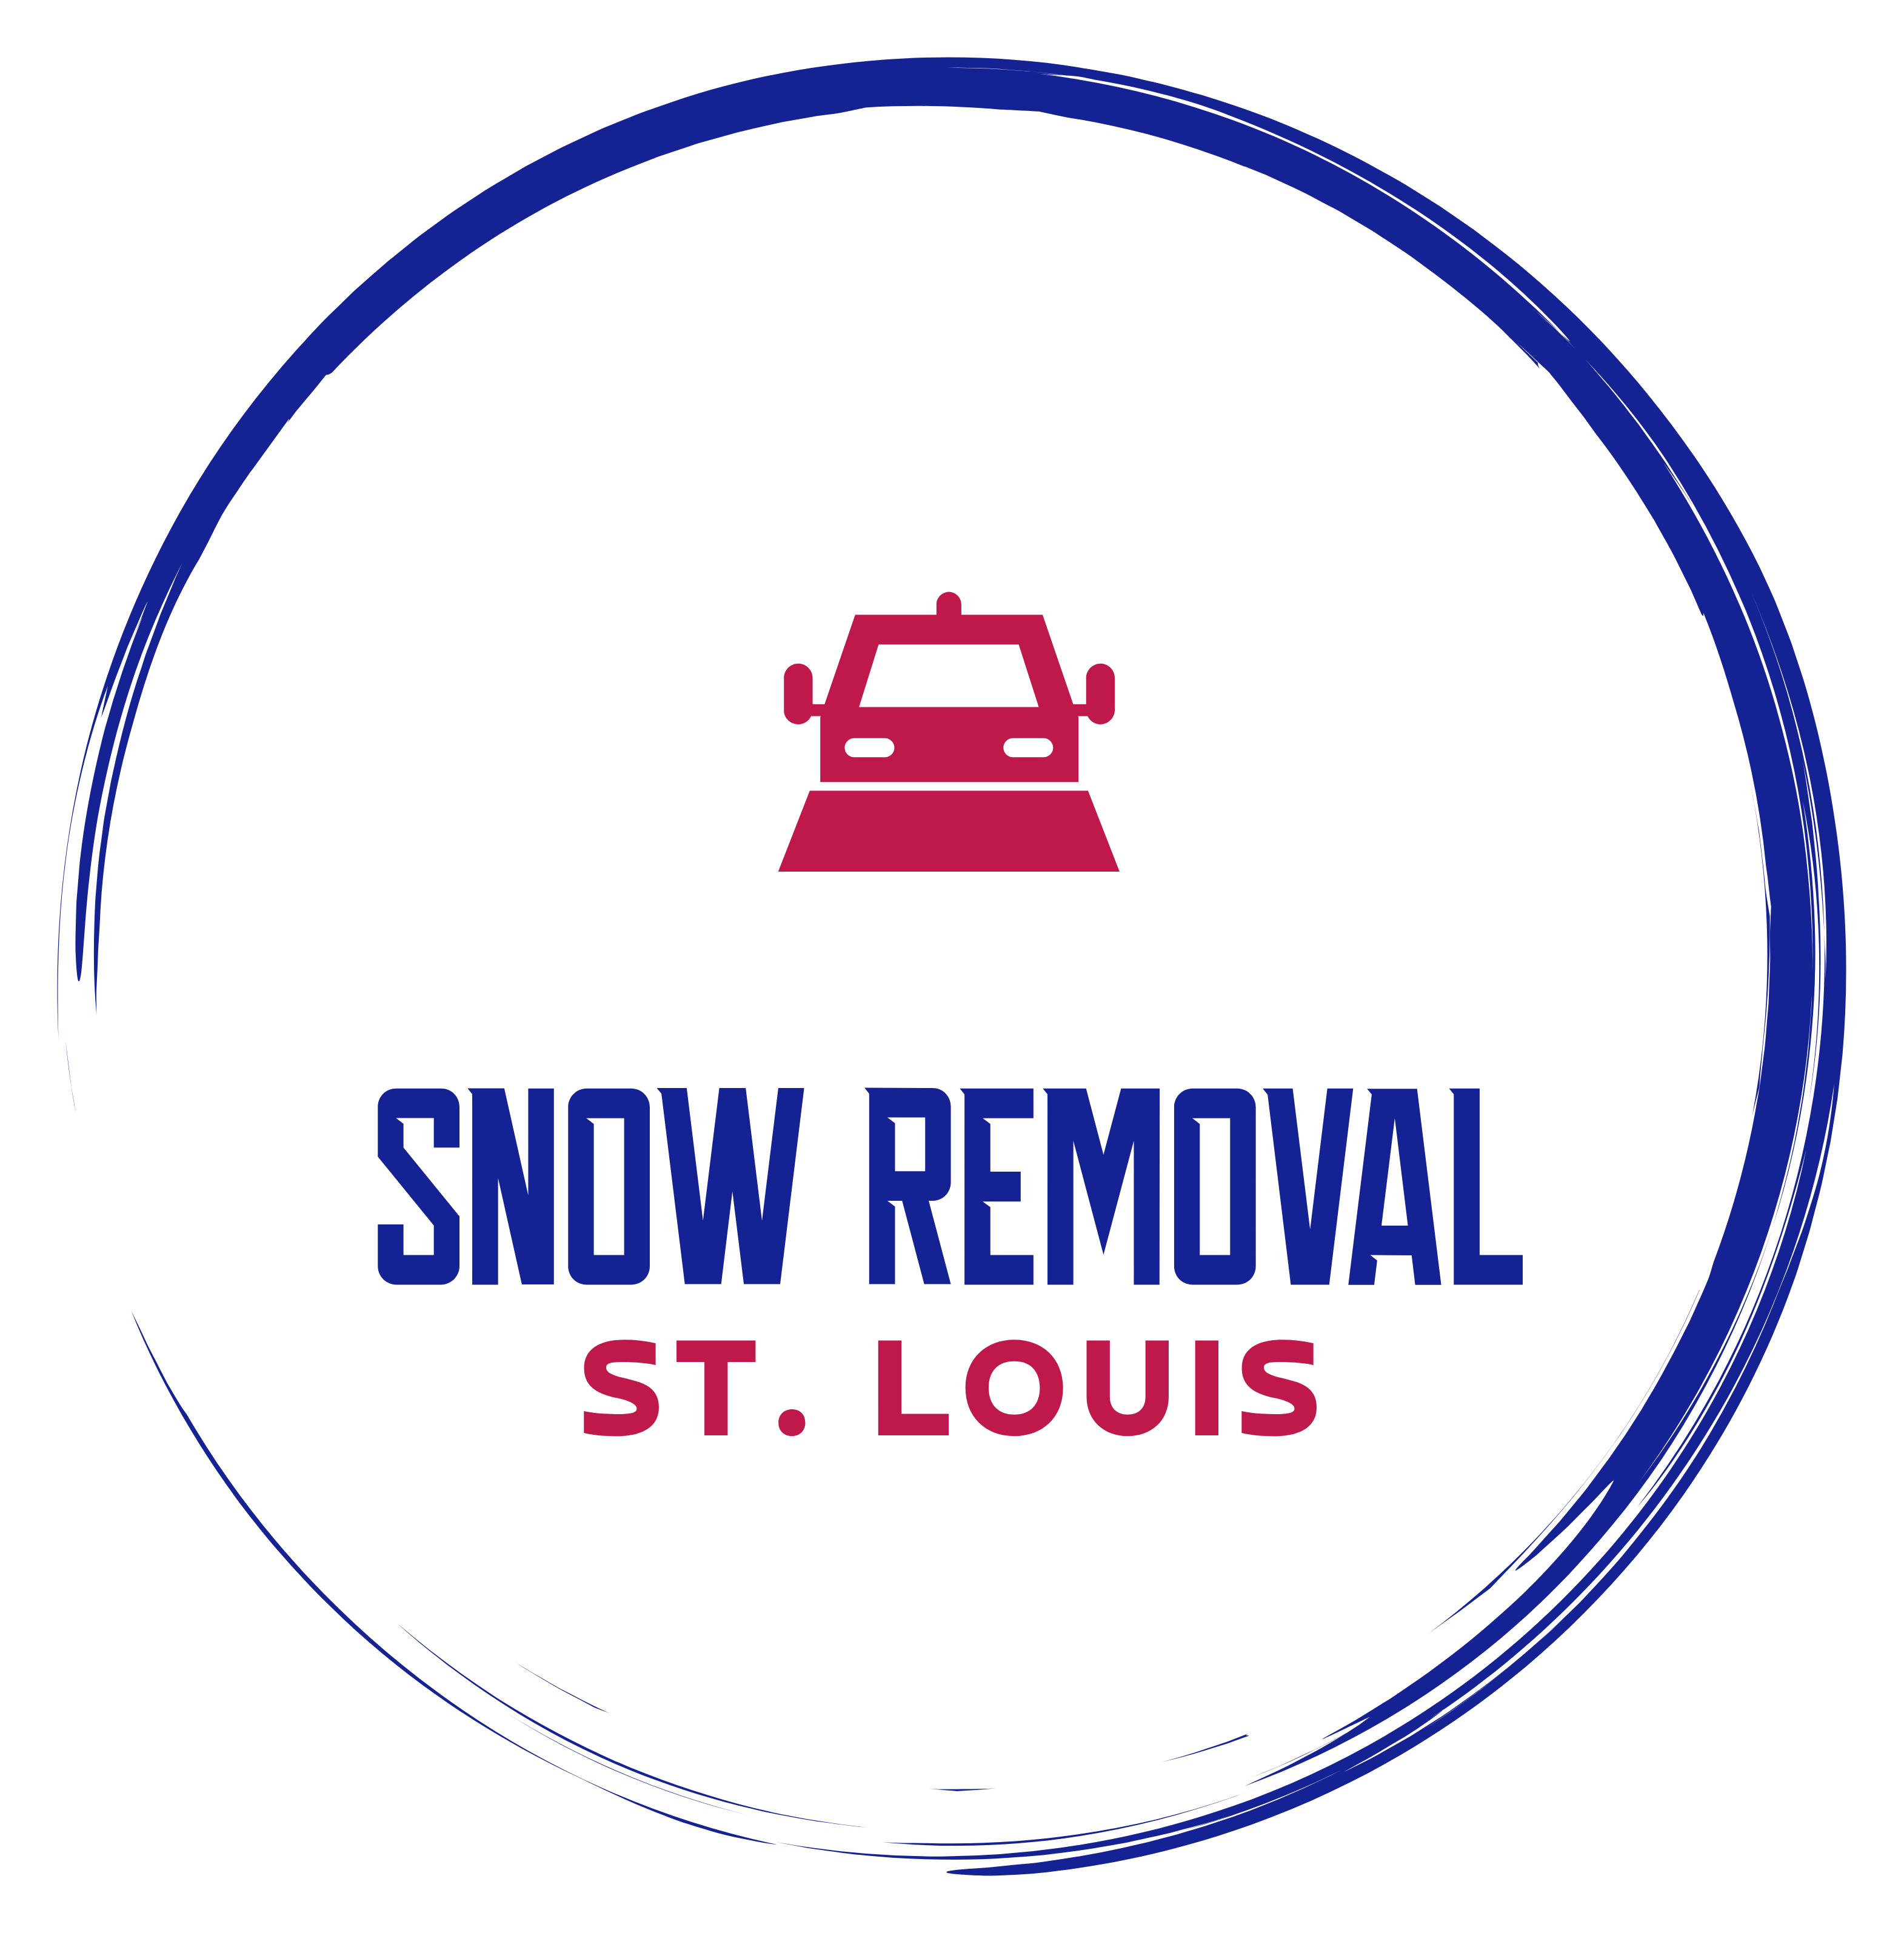 Snow Removal St. Louis